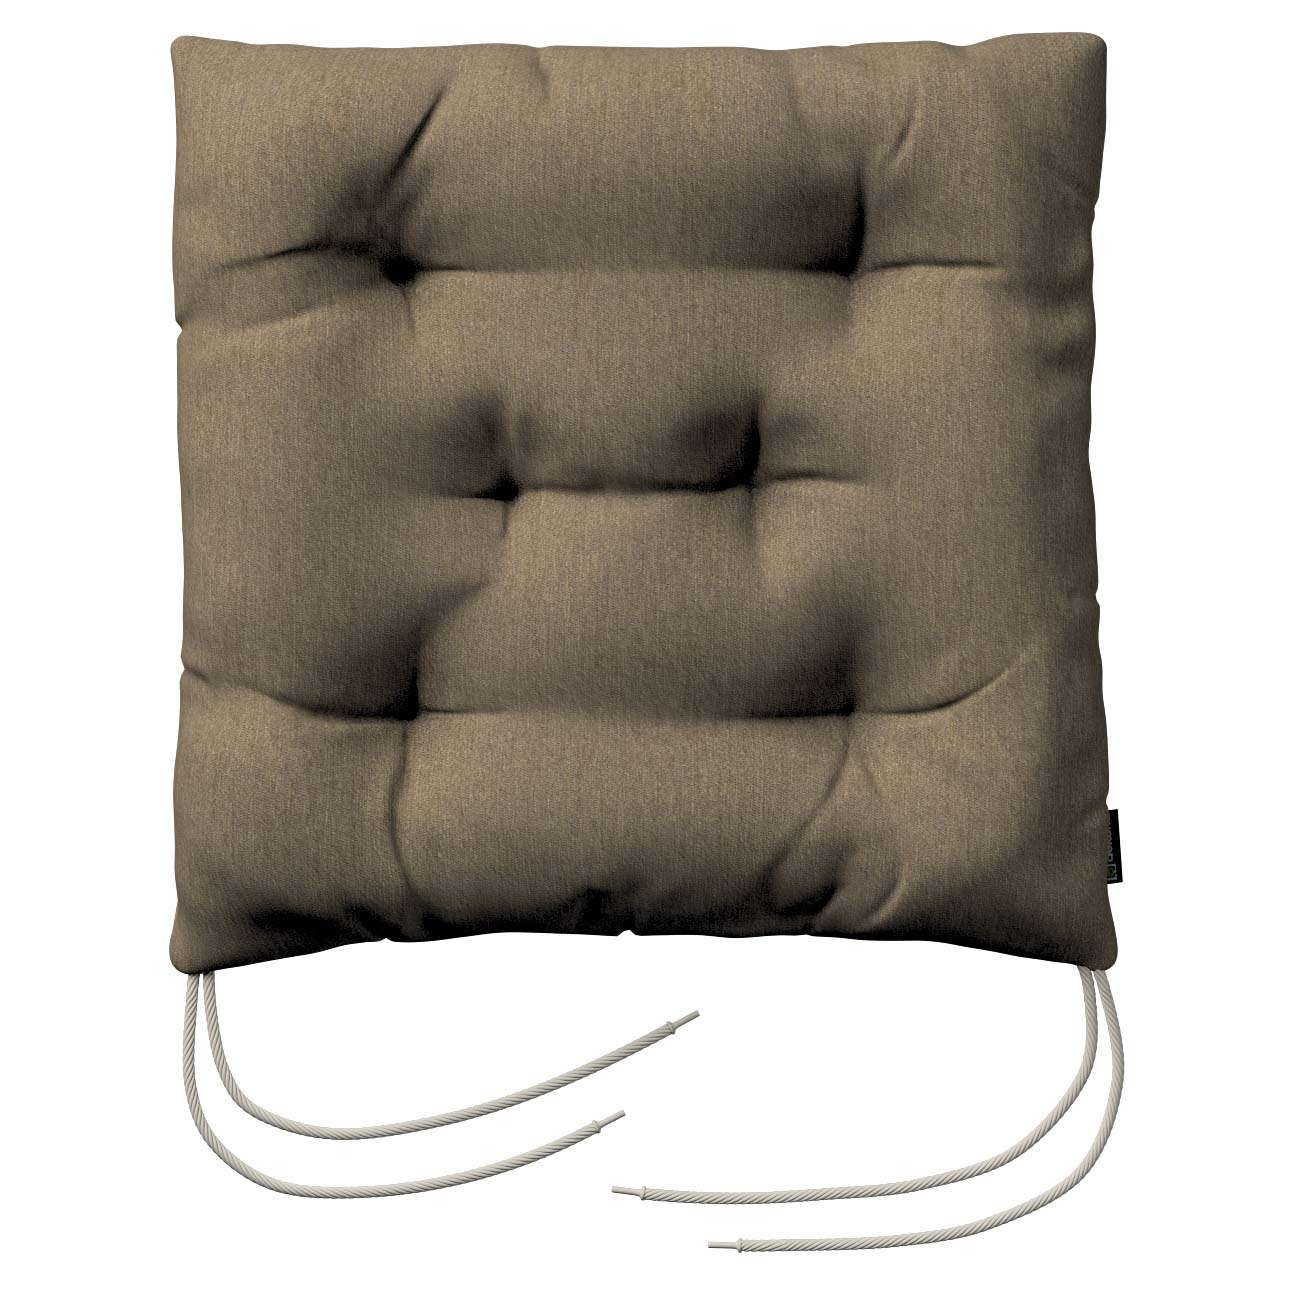 Jack seat pad with ties in collection Chenille, fabric: 702-21